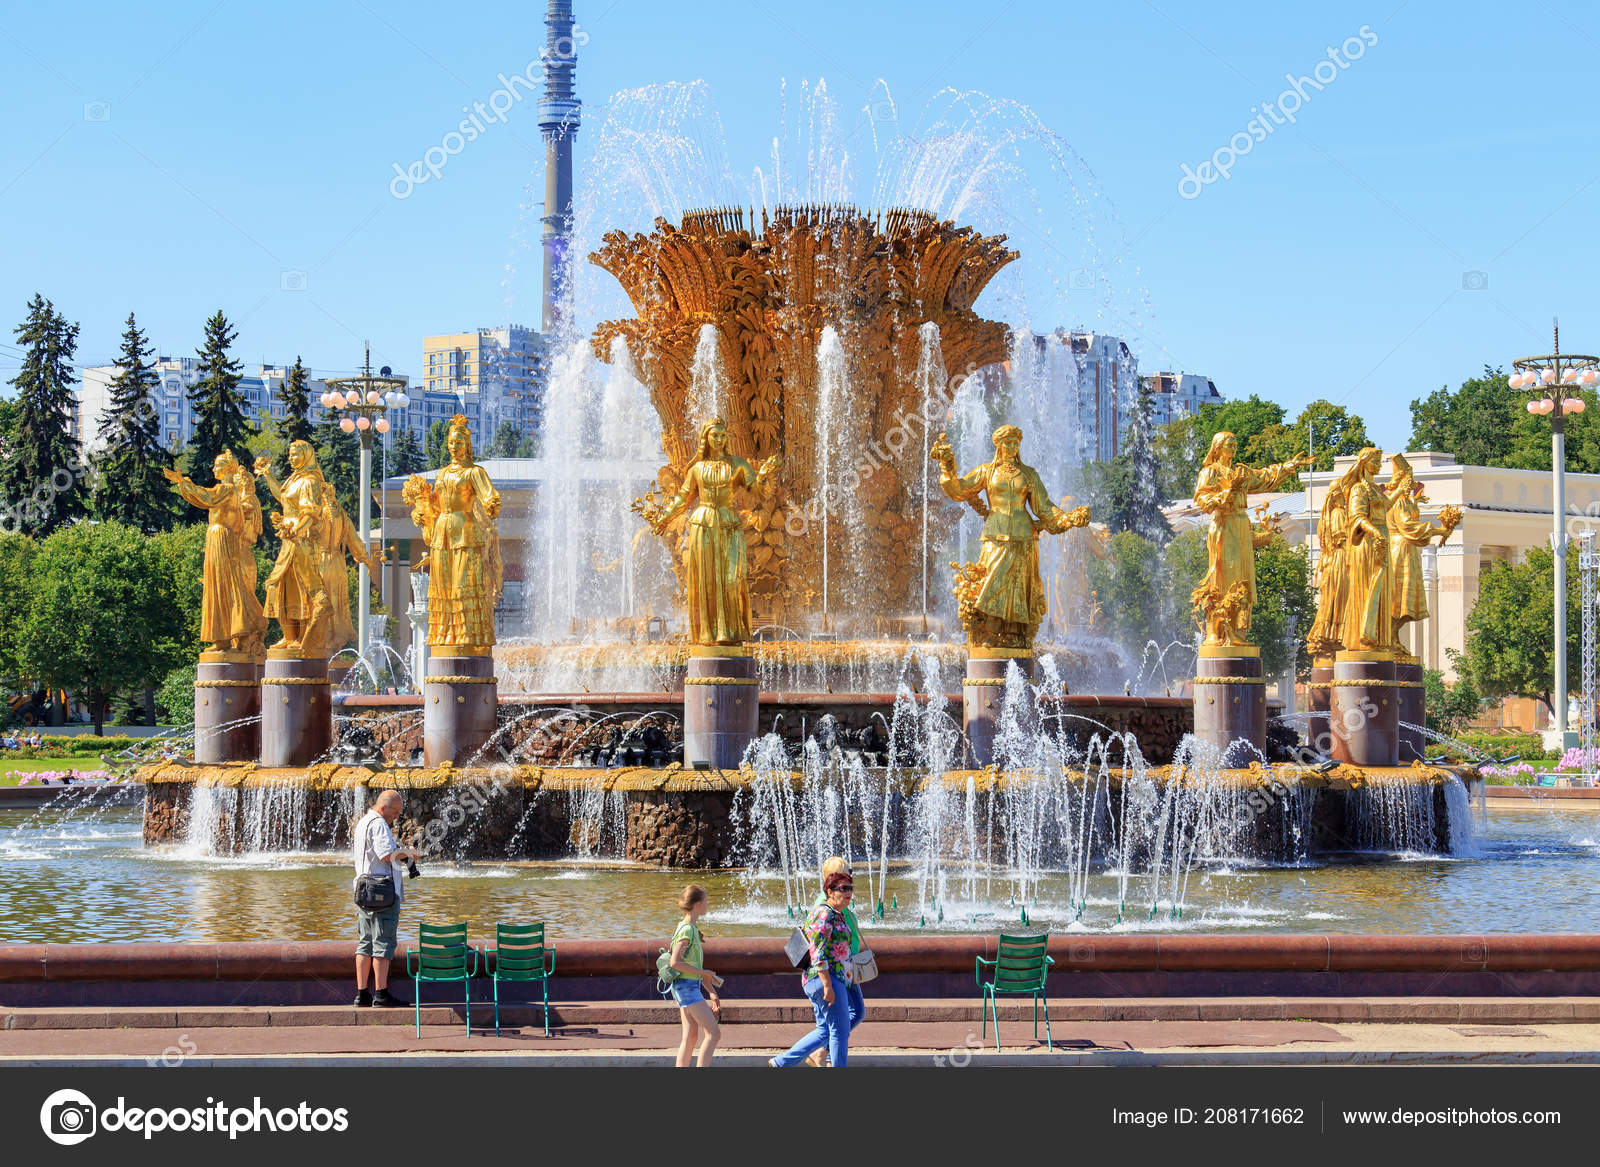 depositphotos 208171662-stock-photo-moscow-russia-august-2018-tourists